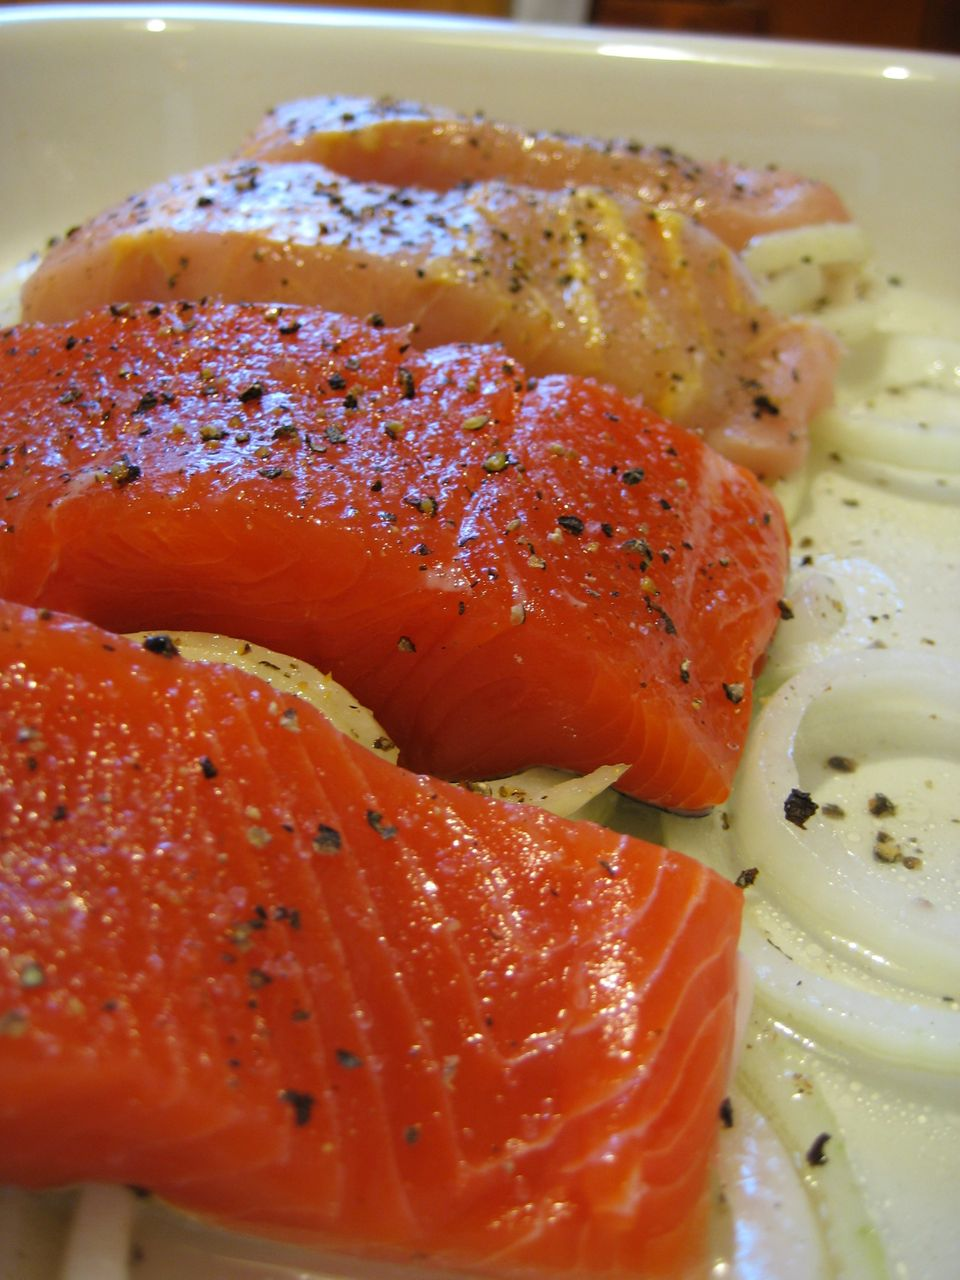 There are a number of seafood options with a hearty dose of vitamin D. Salmon is high on the list; three ounces of canned soc